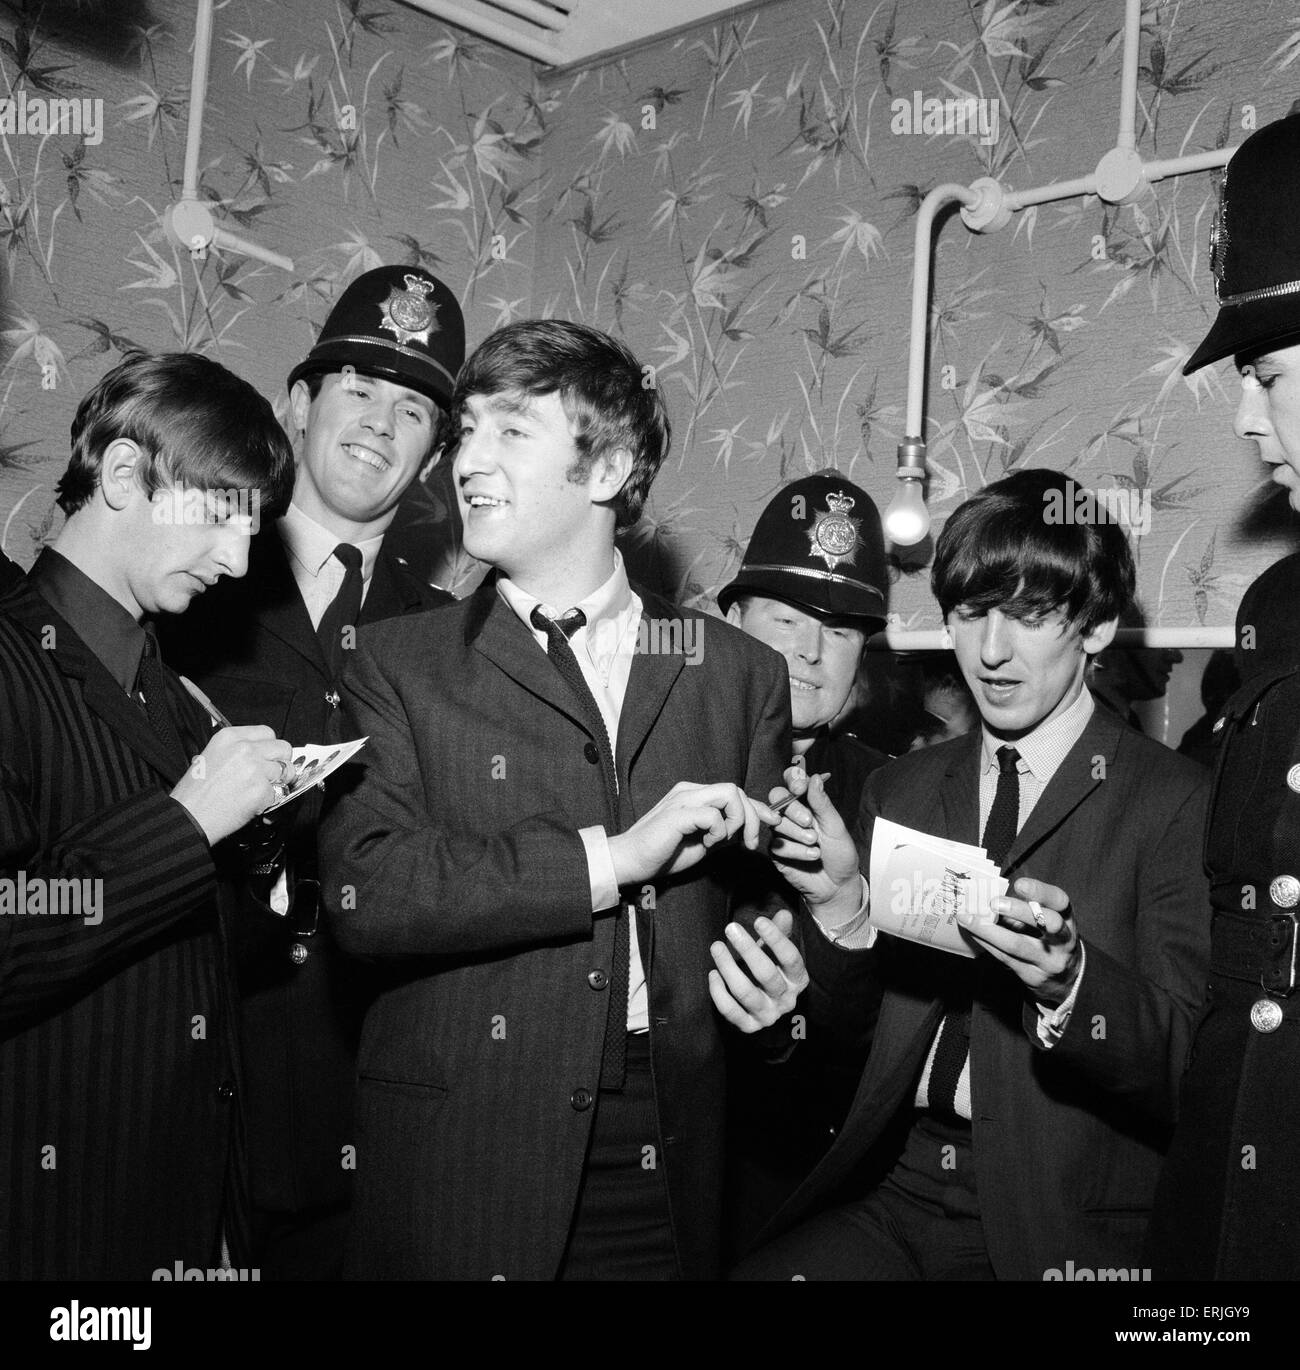 Pop Group The Beatles November 1963 The Beatles sign autographs for birmingham policemen, who helped smuggle them - Stock Image